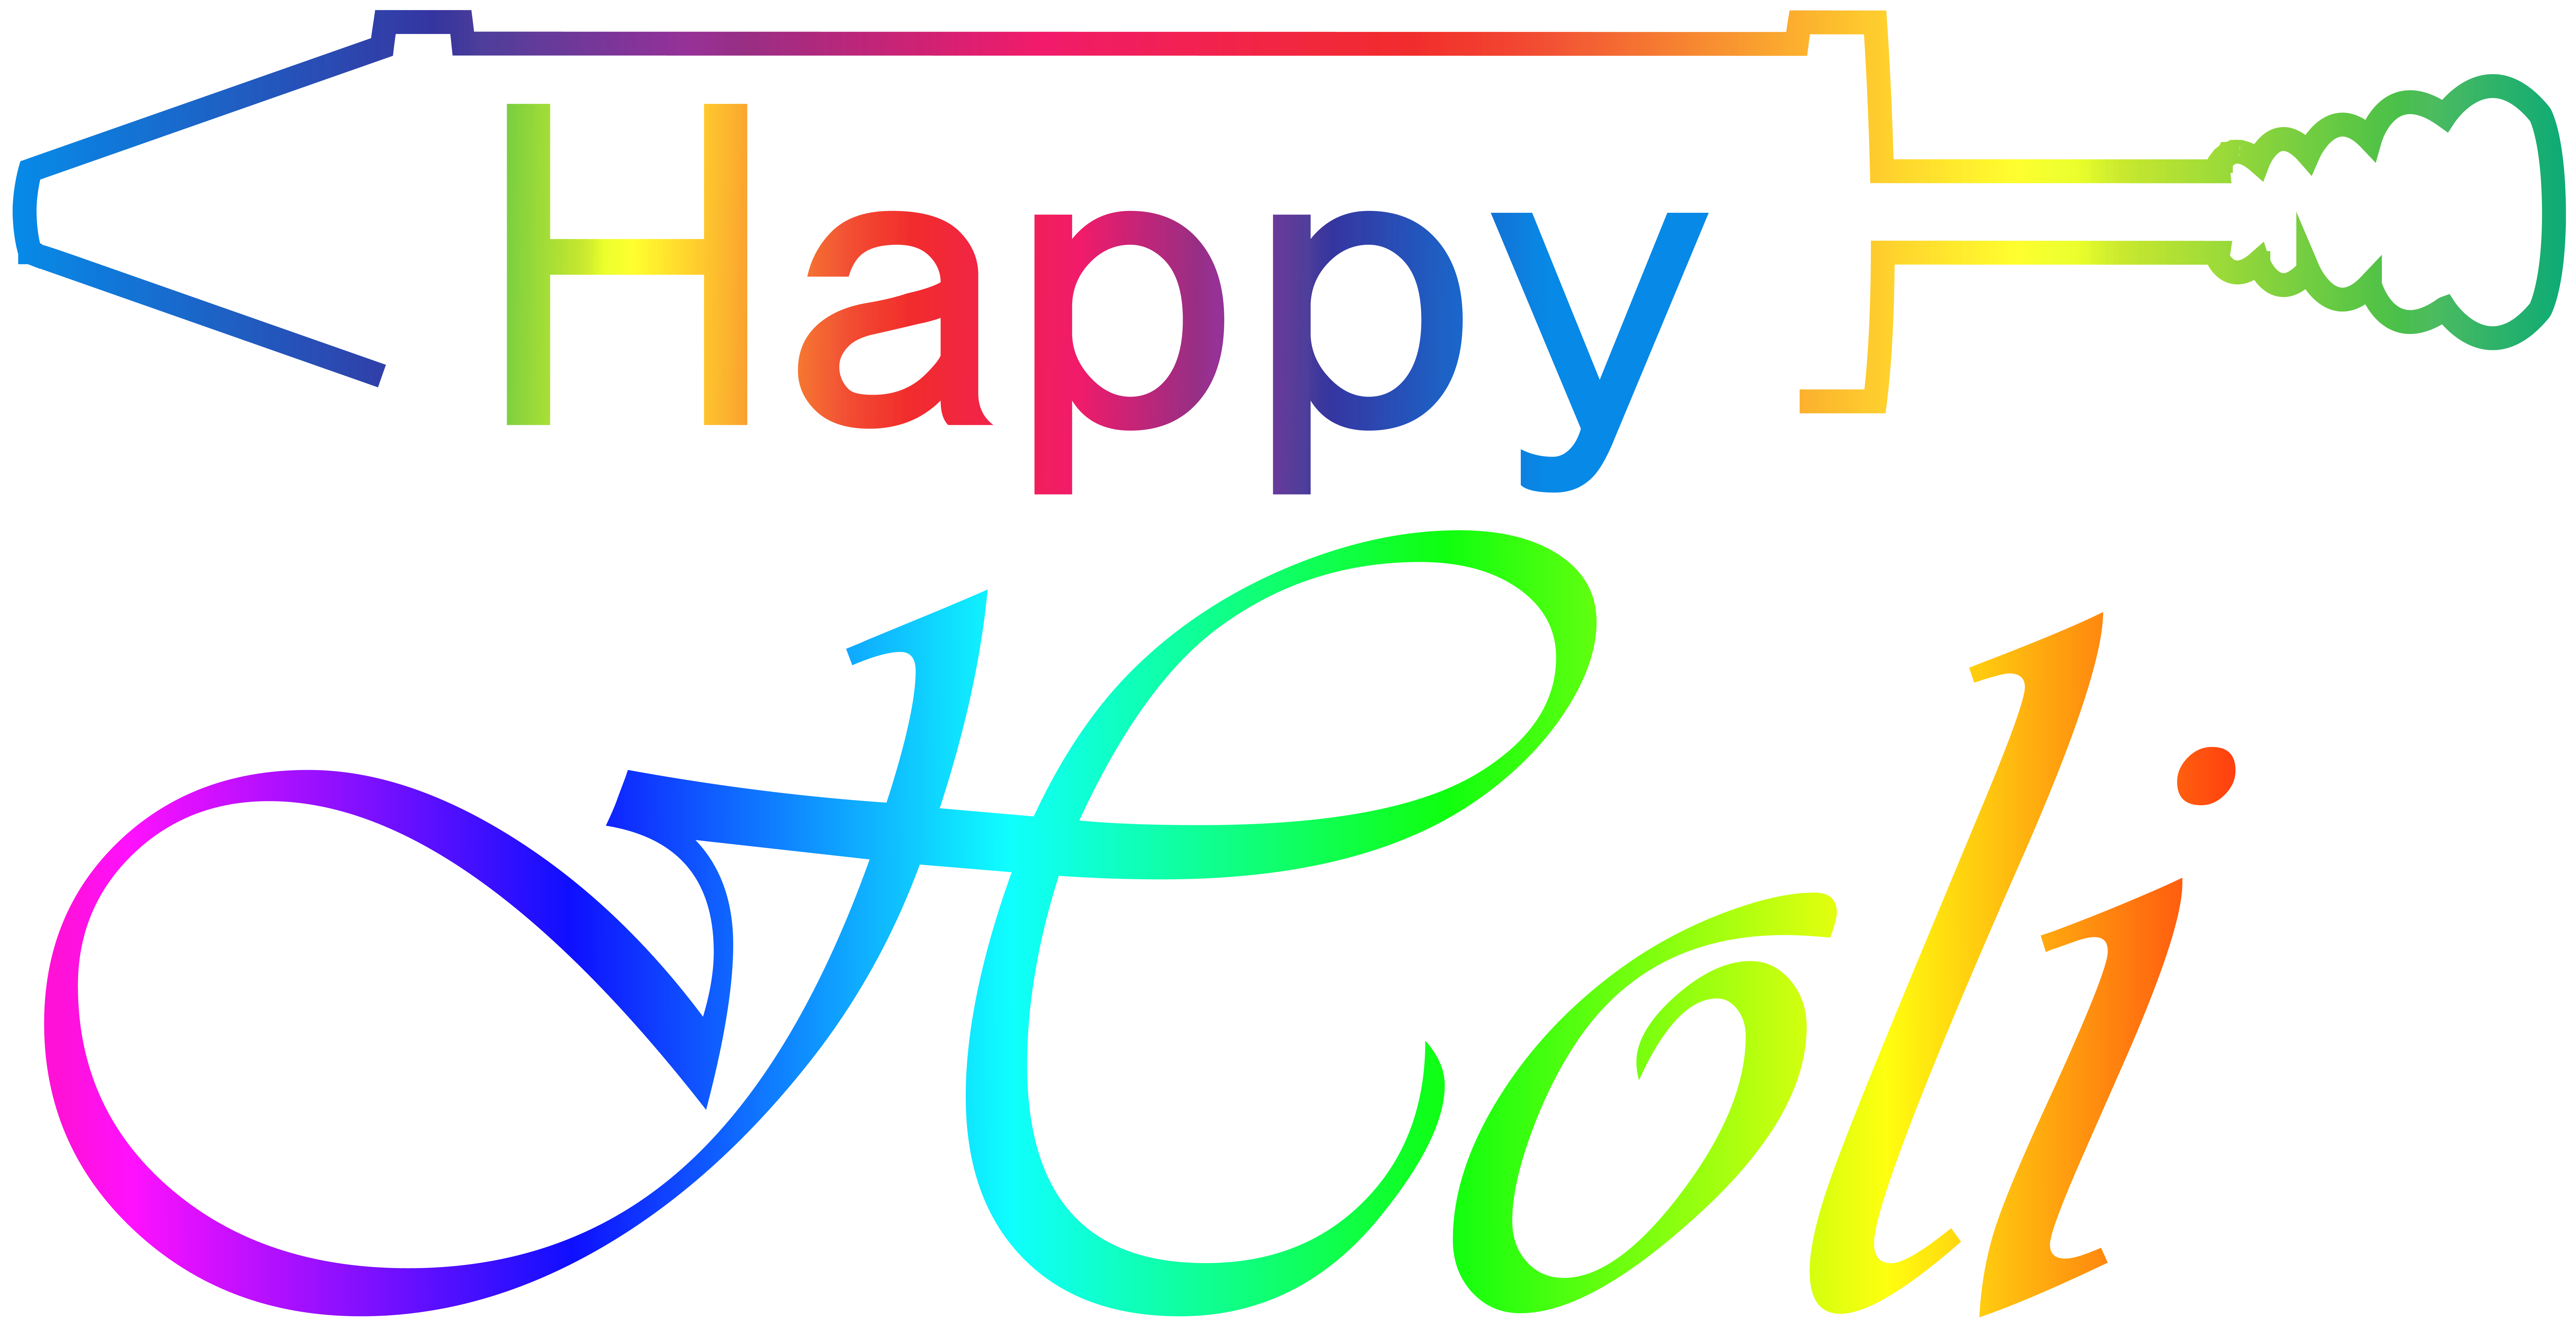 Holi images hd clipart graphic royalty free Happy Holi Transparent Clip Art Image   Gallery ... graphic royalty free